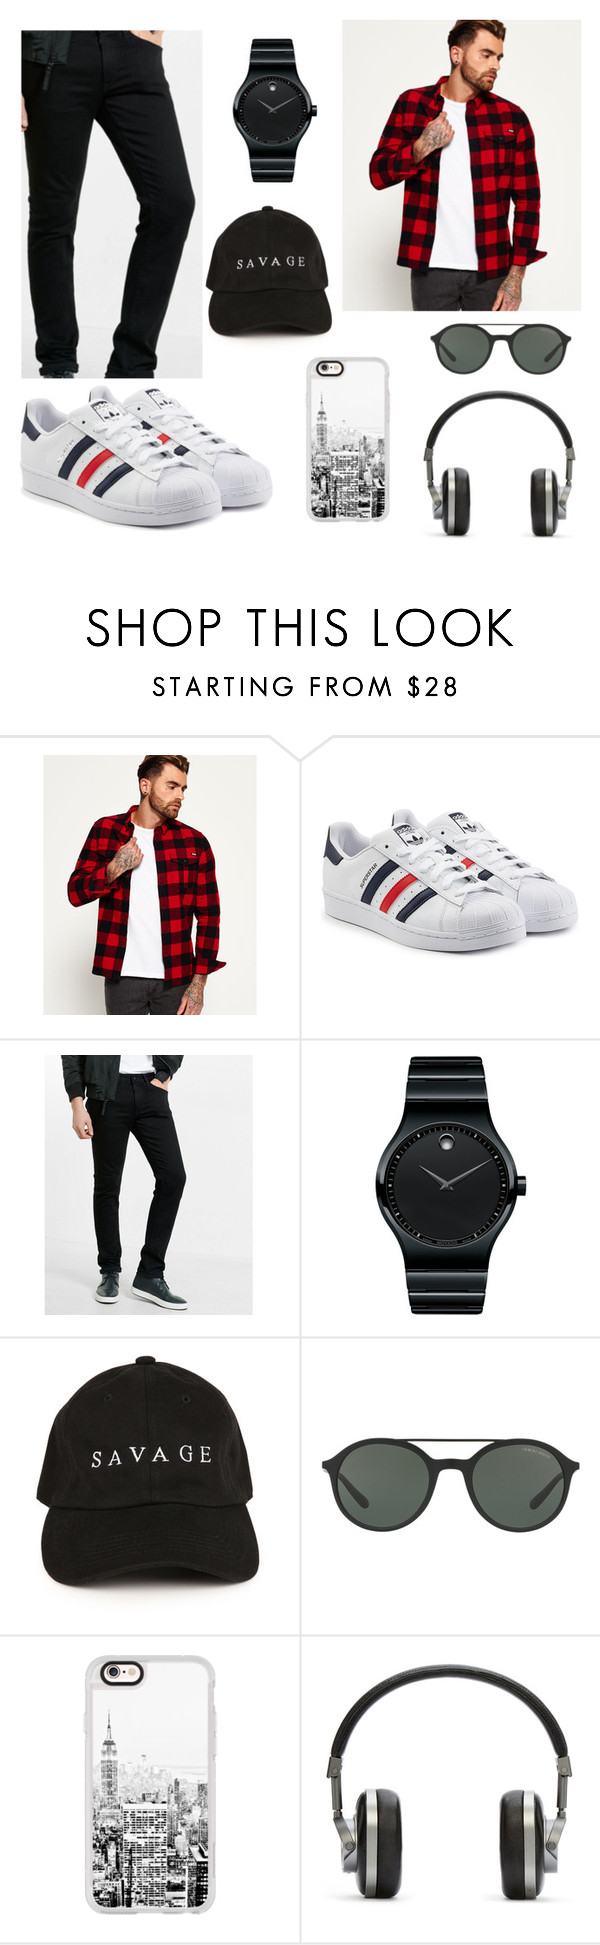 """Untitled #17"" by jessicamoz ❤ liked on Polyvore featuring Superdry, adidas Originals, Express, Movado, Giorgio Armani, Casetify, Master & Dynamic, men's fashion and menswear"